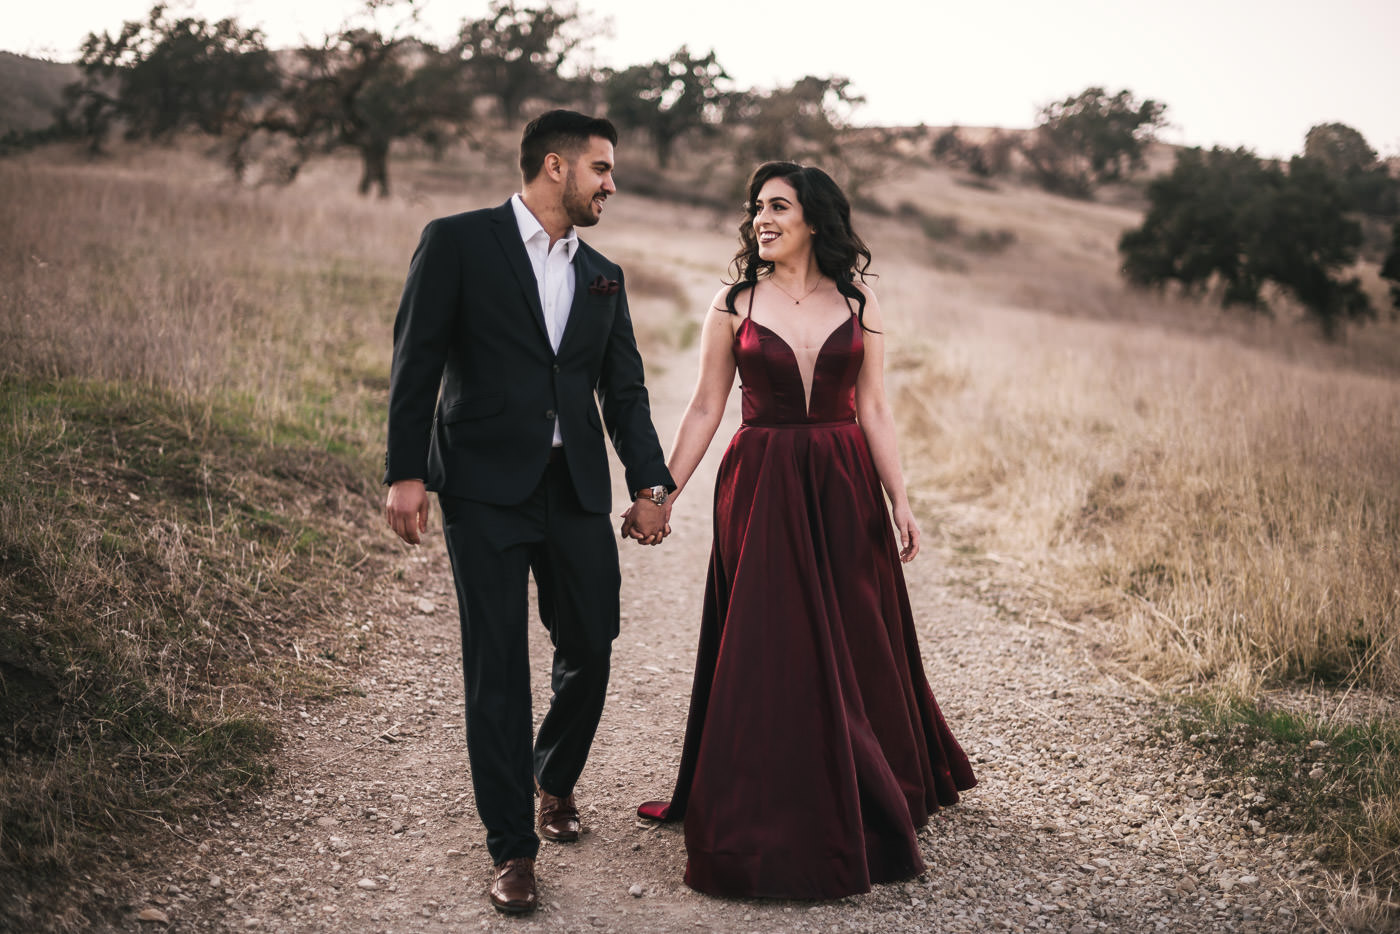 Stunning engagment photos in Malibu California taken by Wedding Photographer.